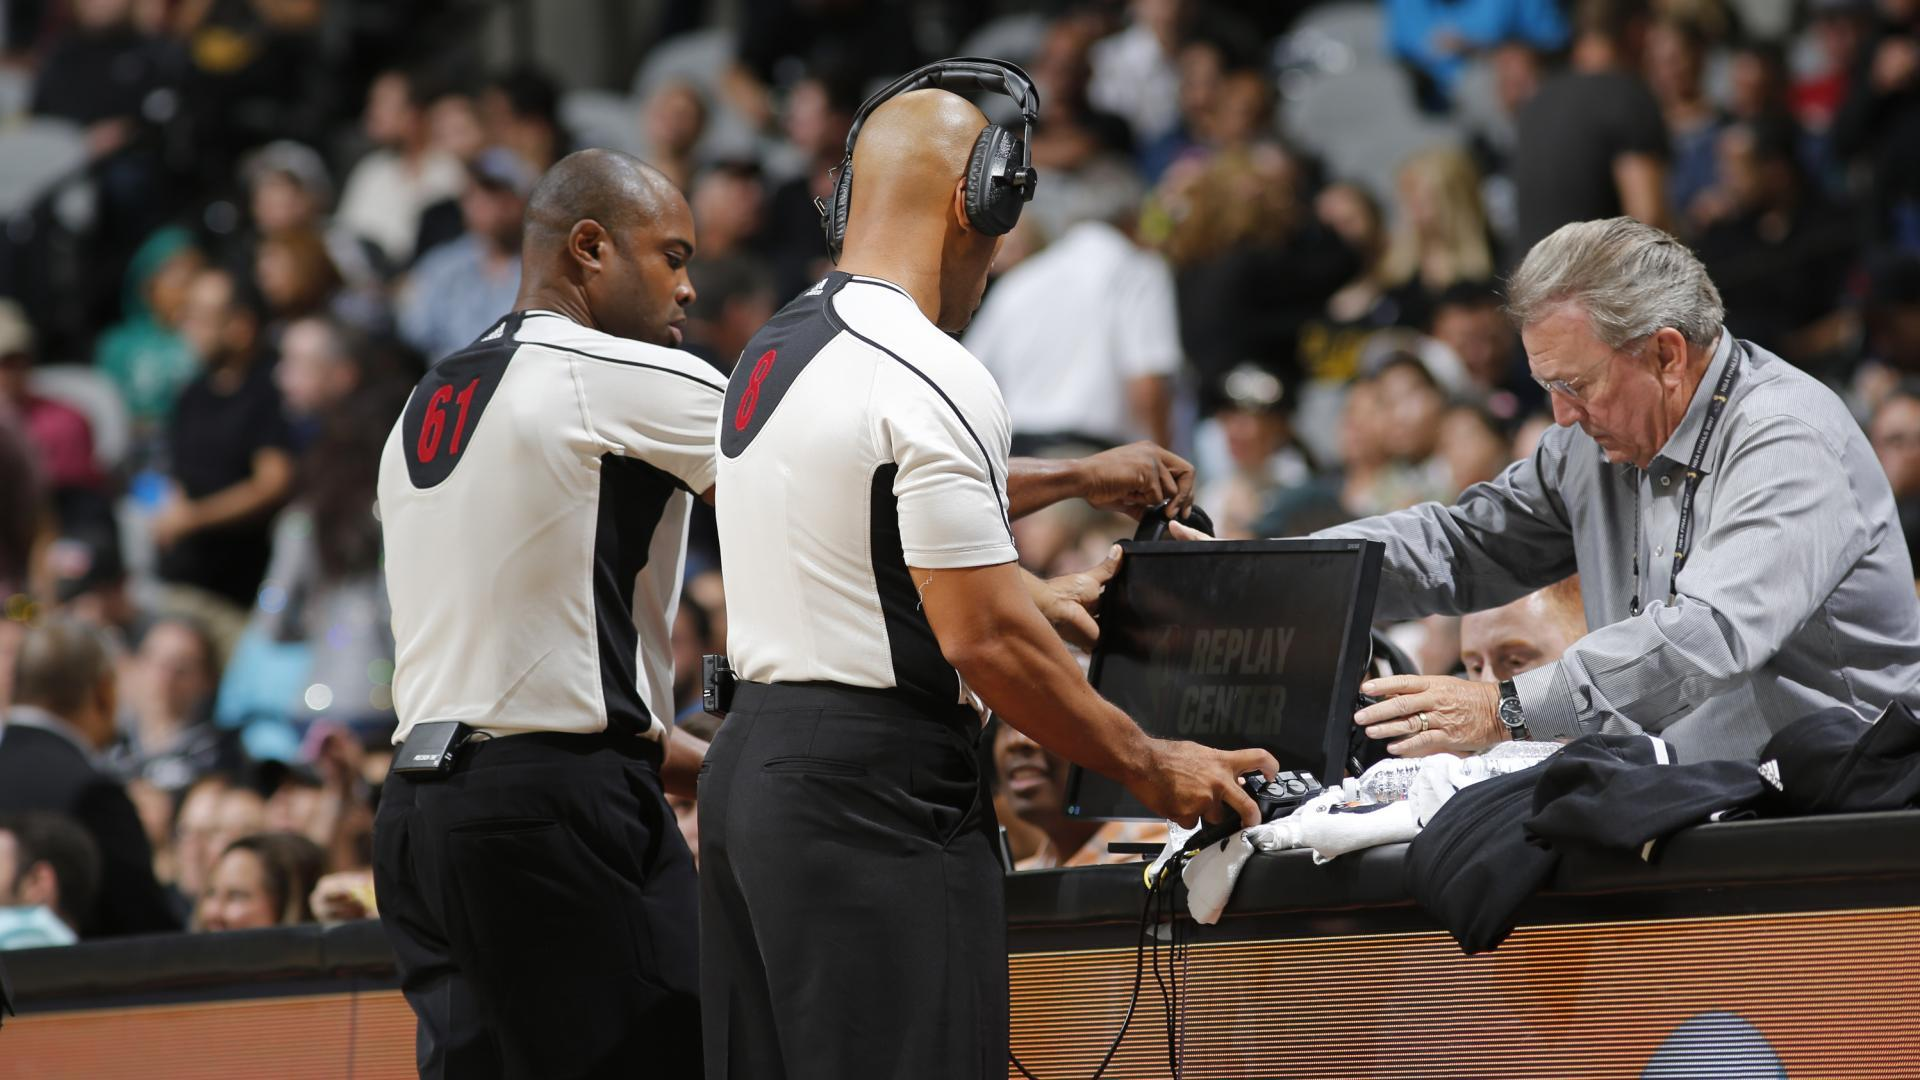 nba referees replay center.jpg